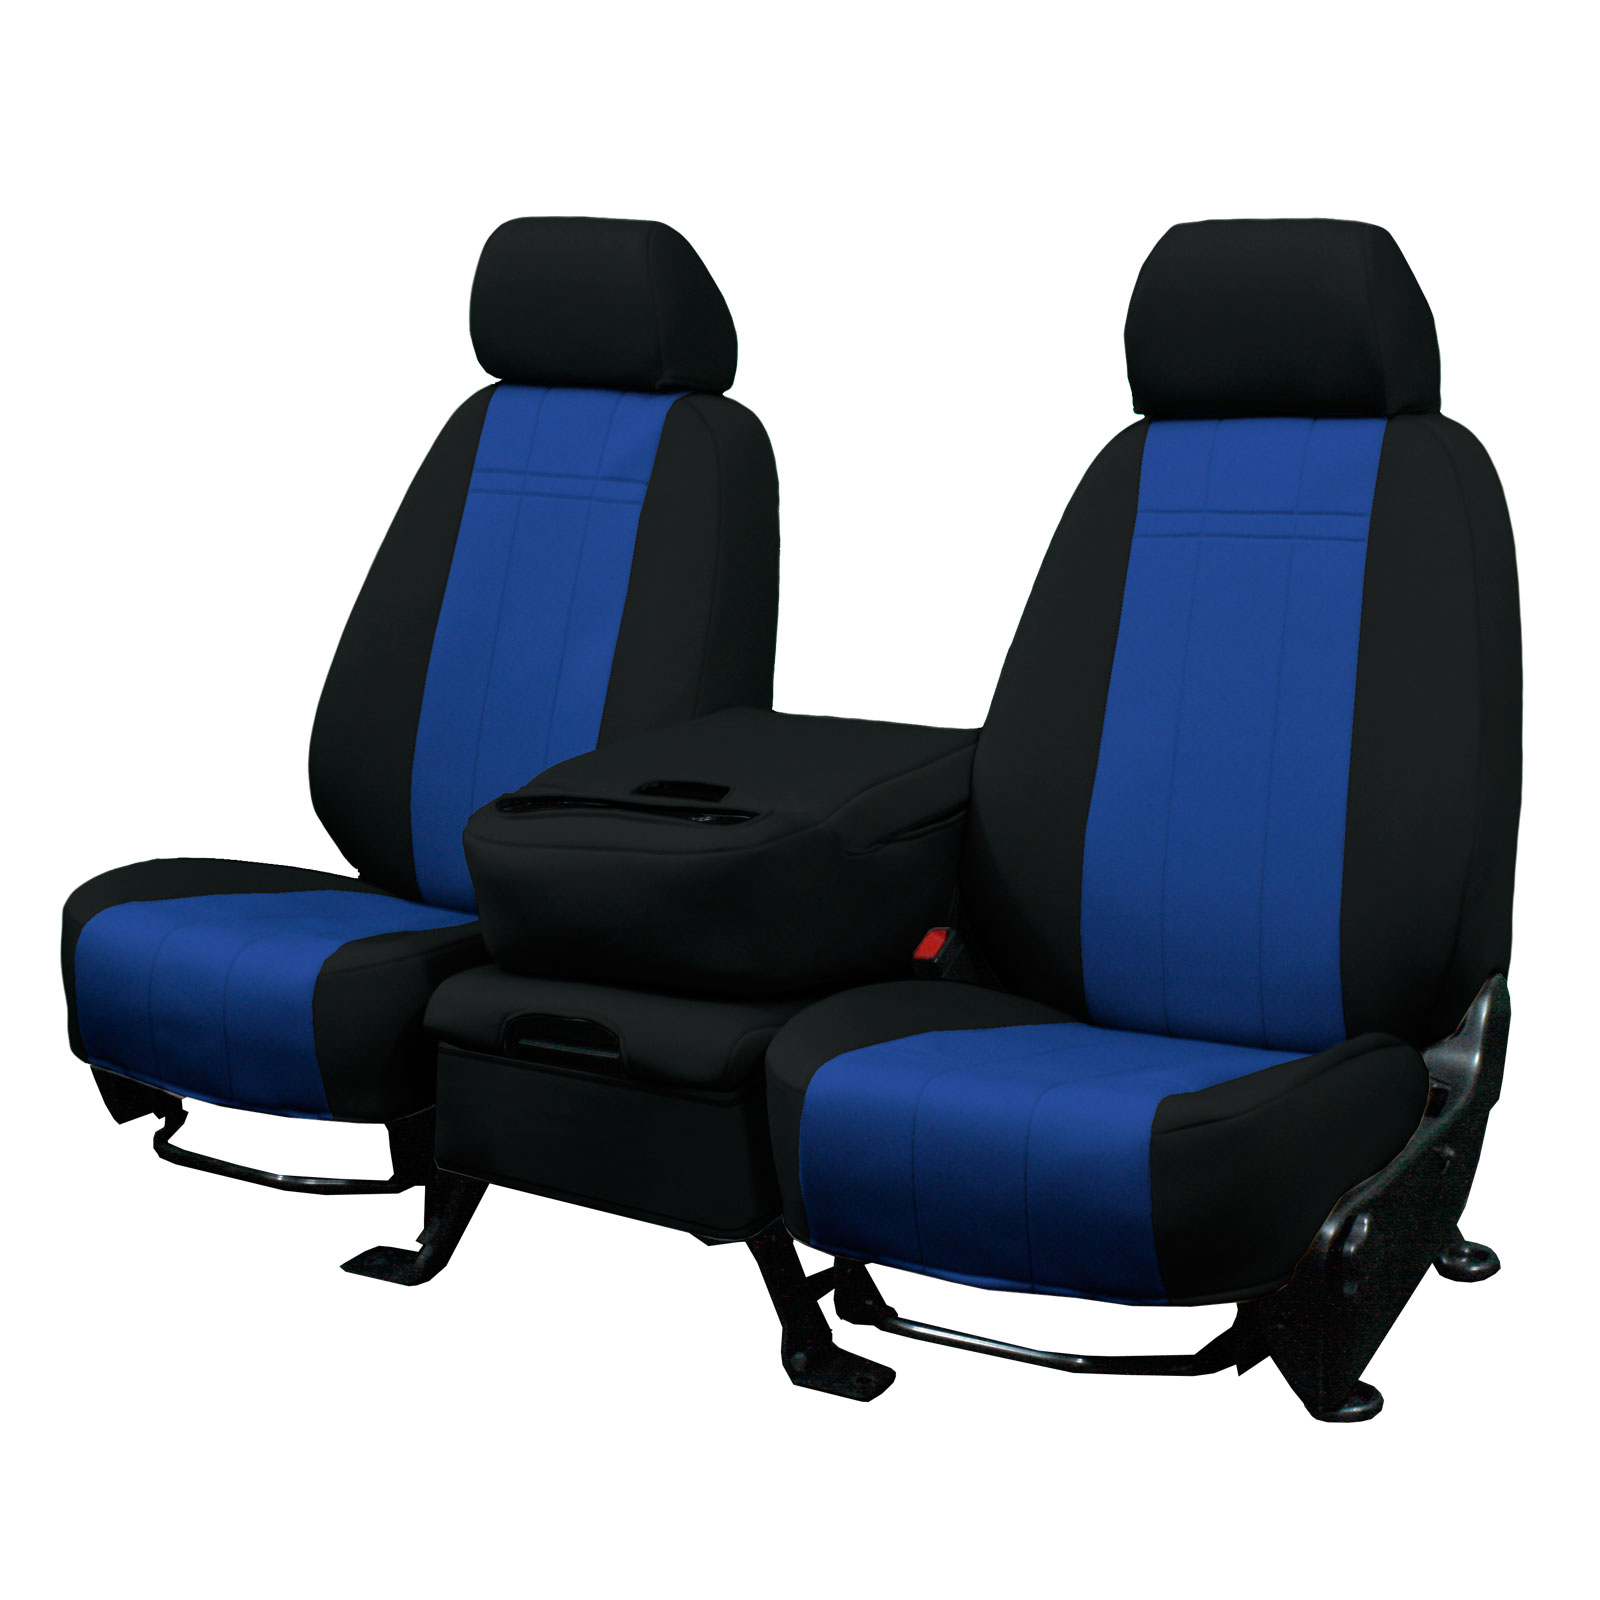 Neosupreme Seat Covers  Buy Online  Free Shipping